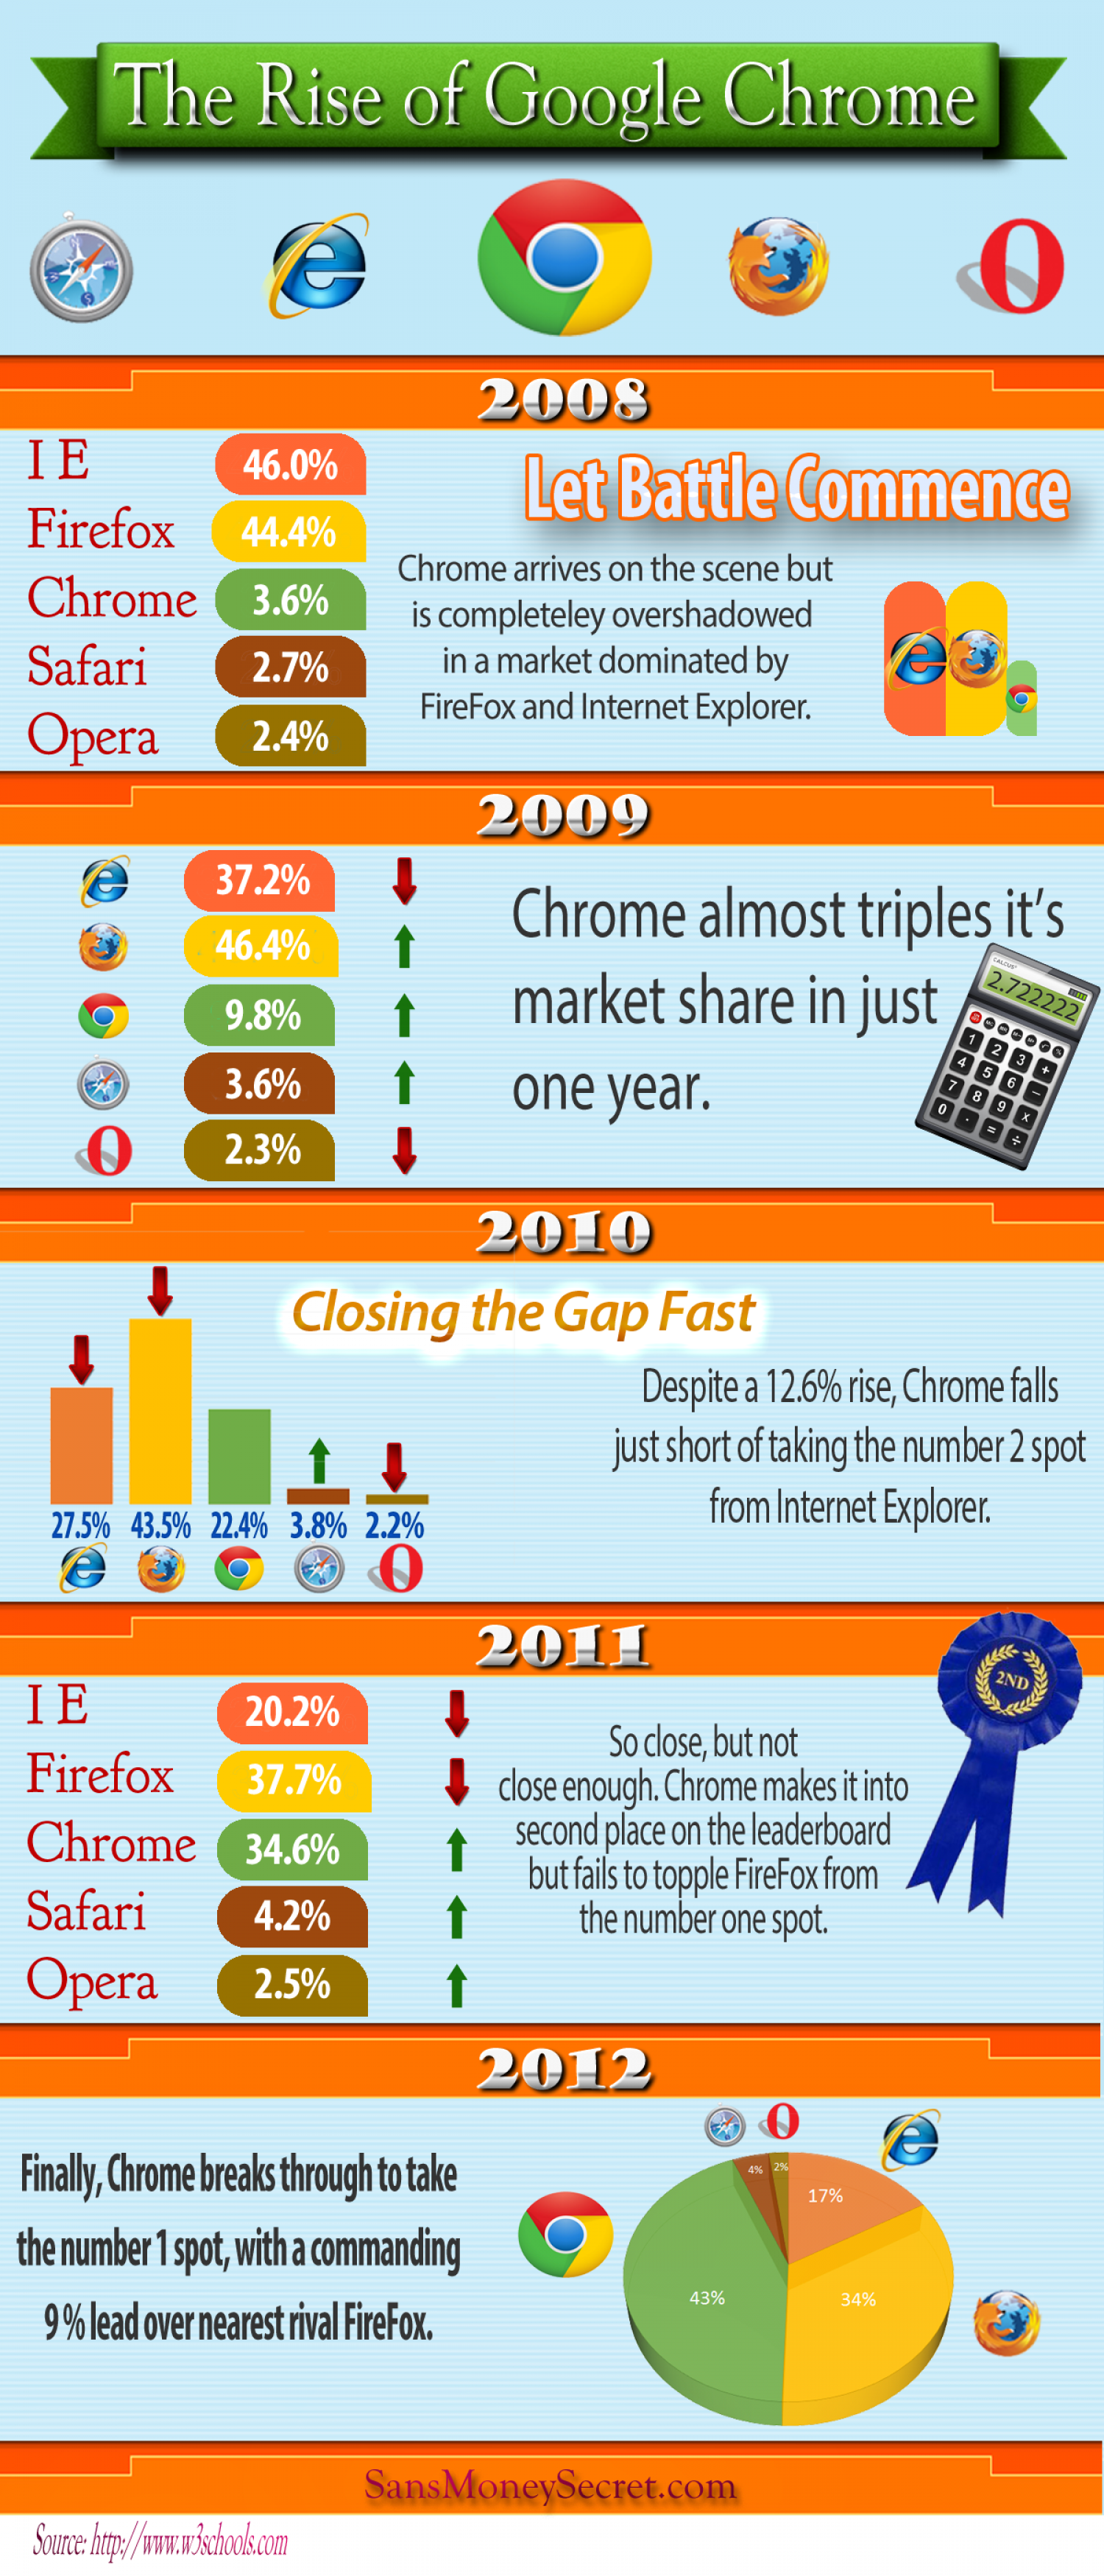 The Rise of Google Chrome Infographic